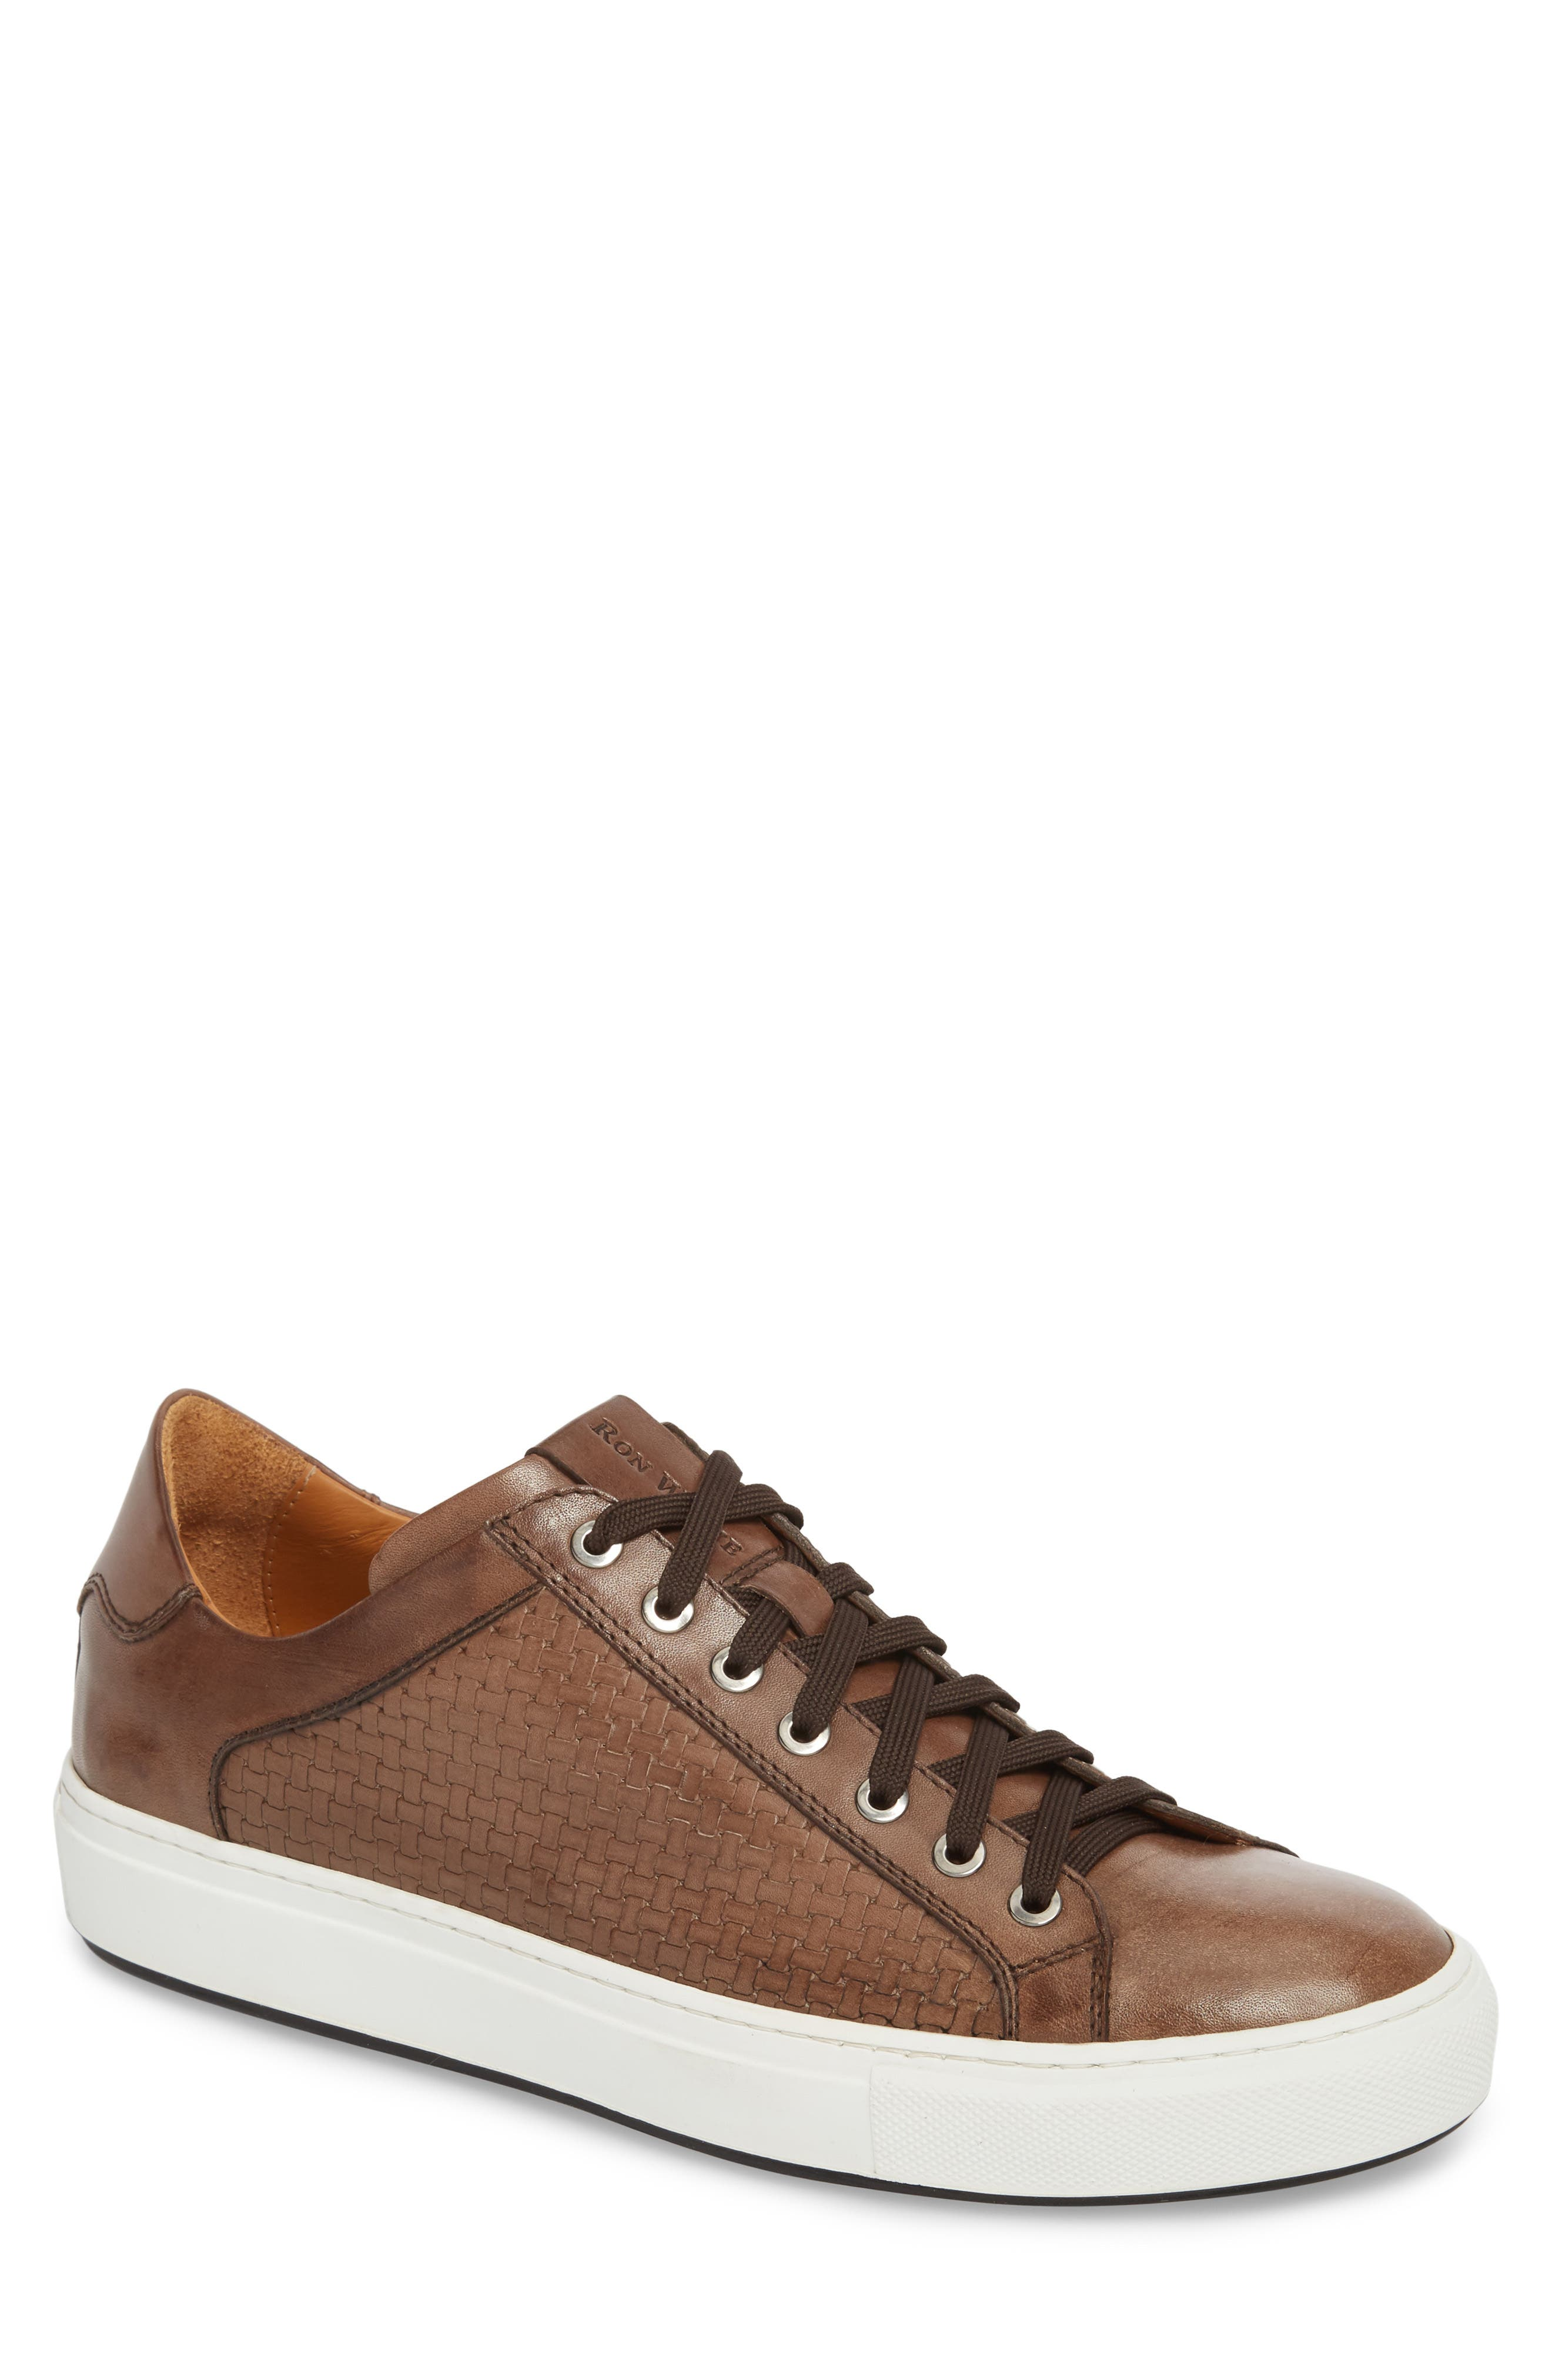 Diego Sneaker,                             Main thumbnail 1, color,                             WALNUT